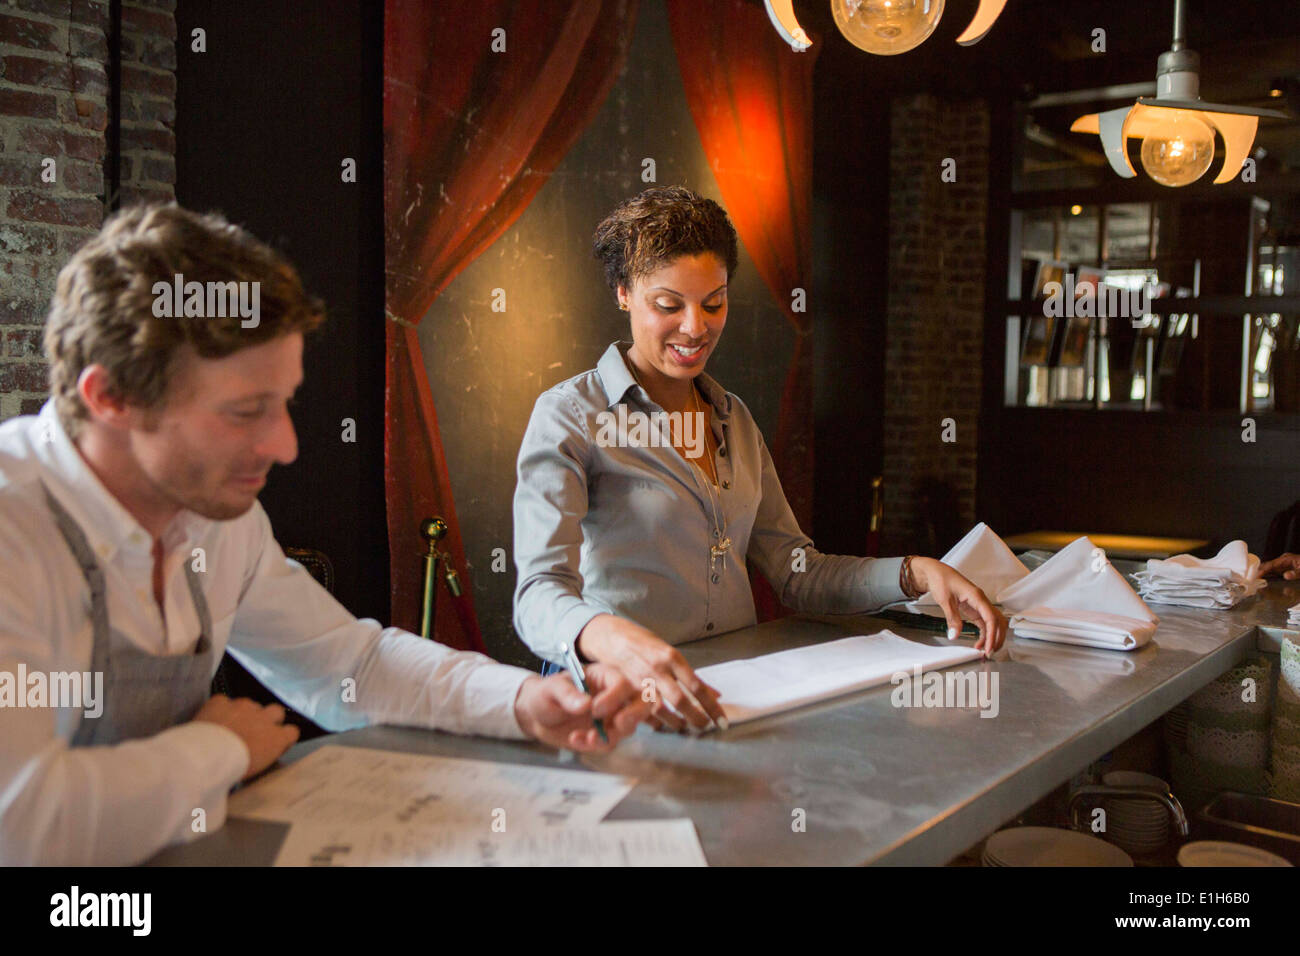 Chef and waitress preparing for service in restaurant - Stock Image